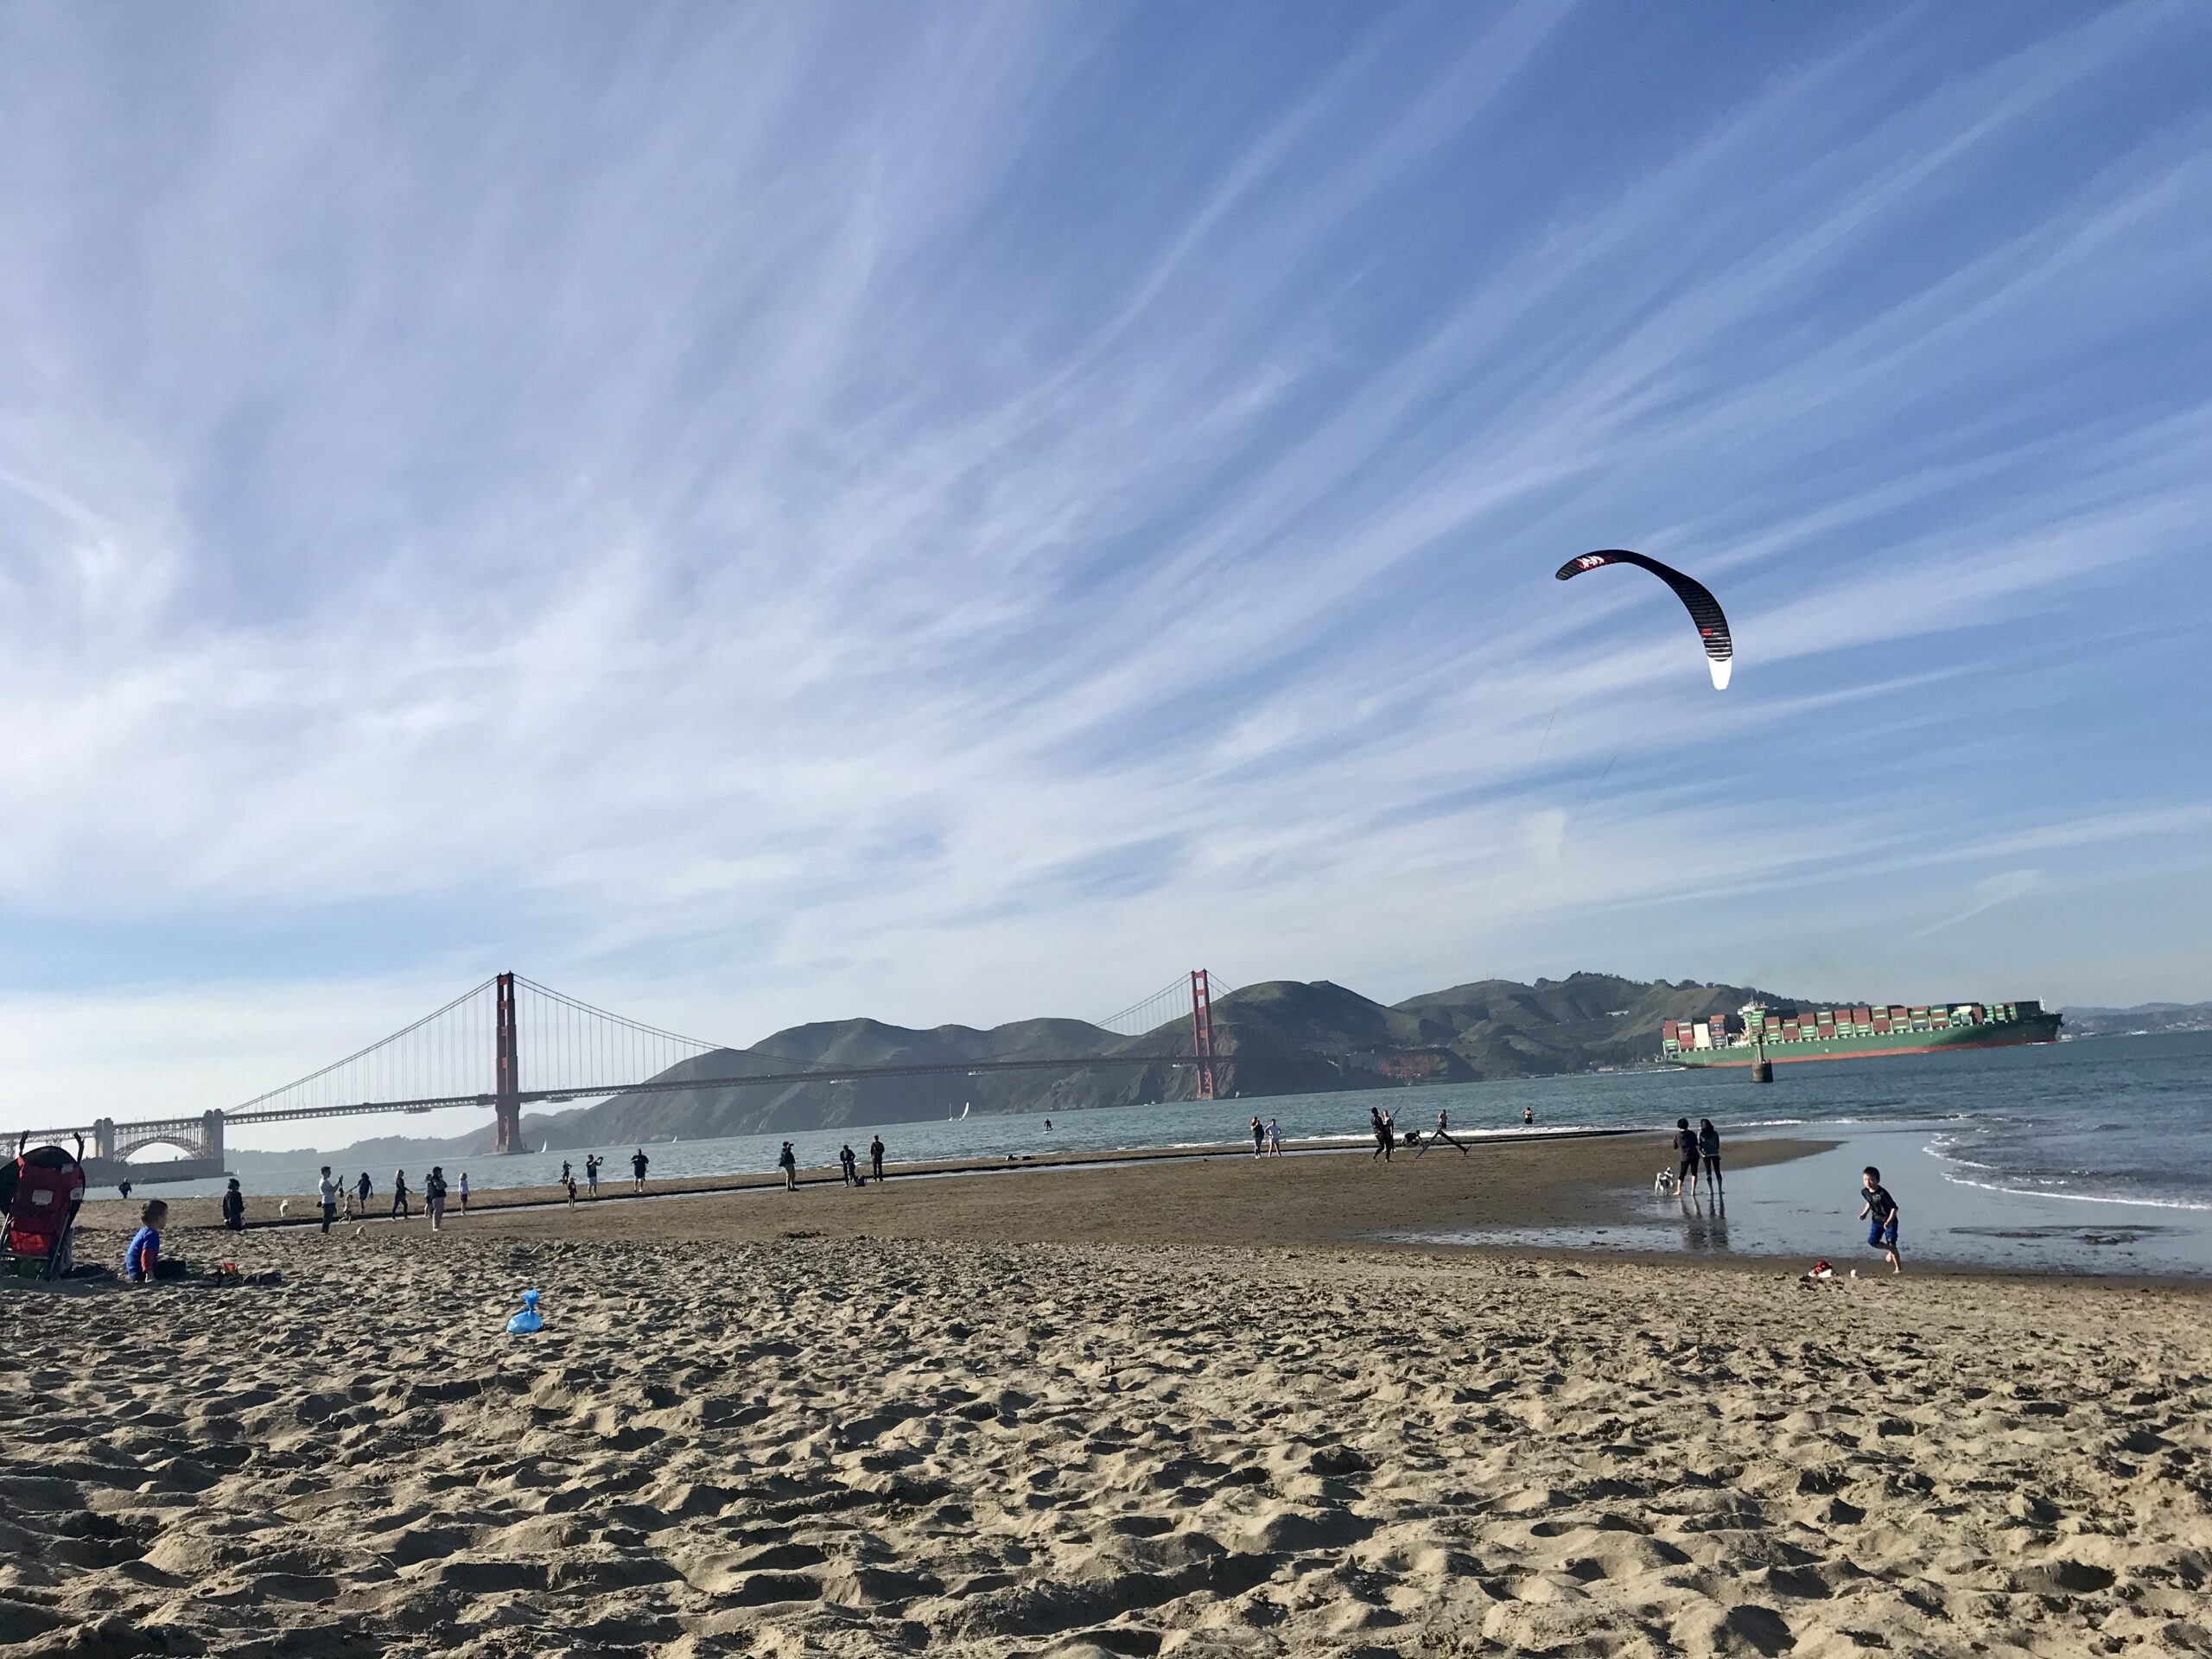 Traveling with kids is not necessary if you live in a great city like San Francisco